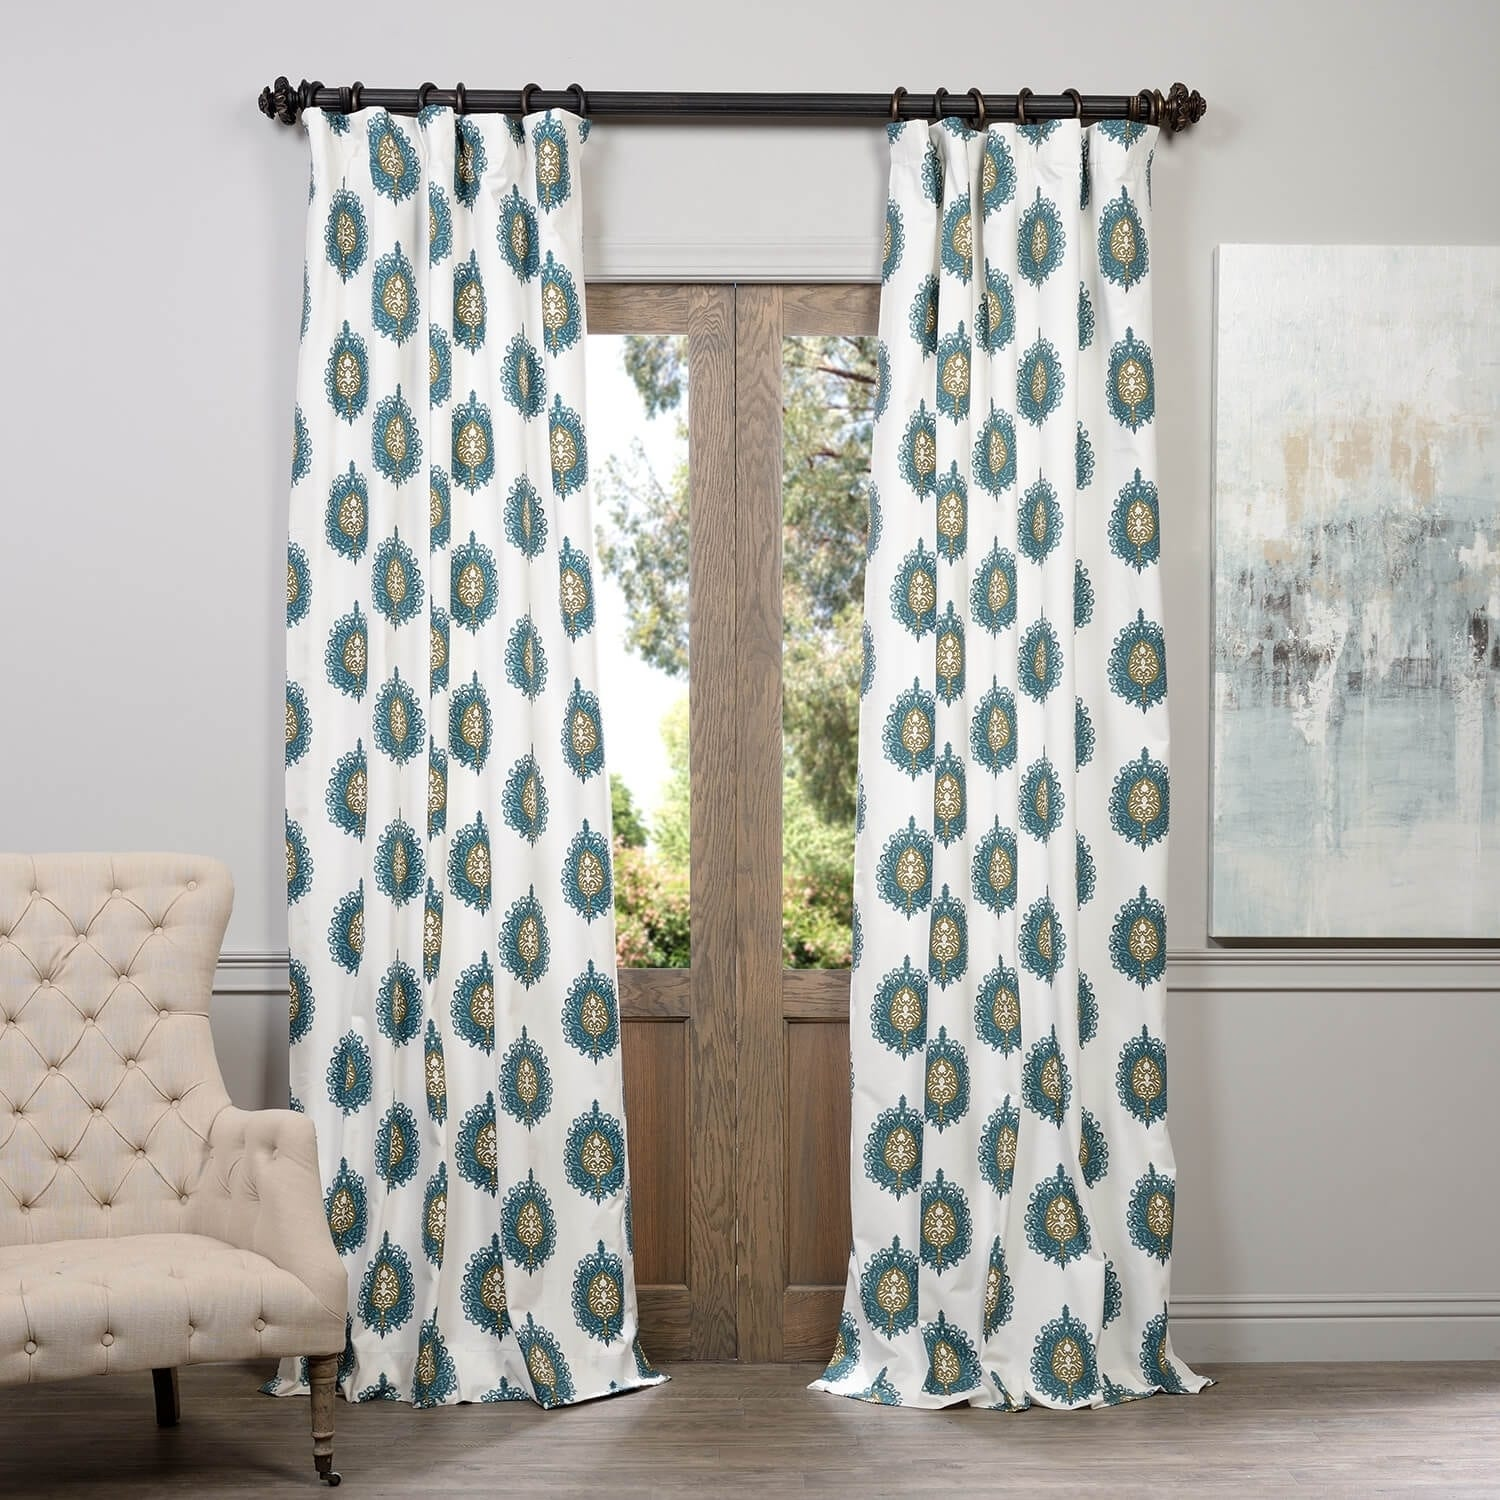 key grommets greek teal ip with walmart gardens better curtain curtains bdab panel com and homes